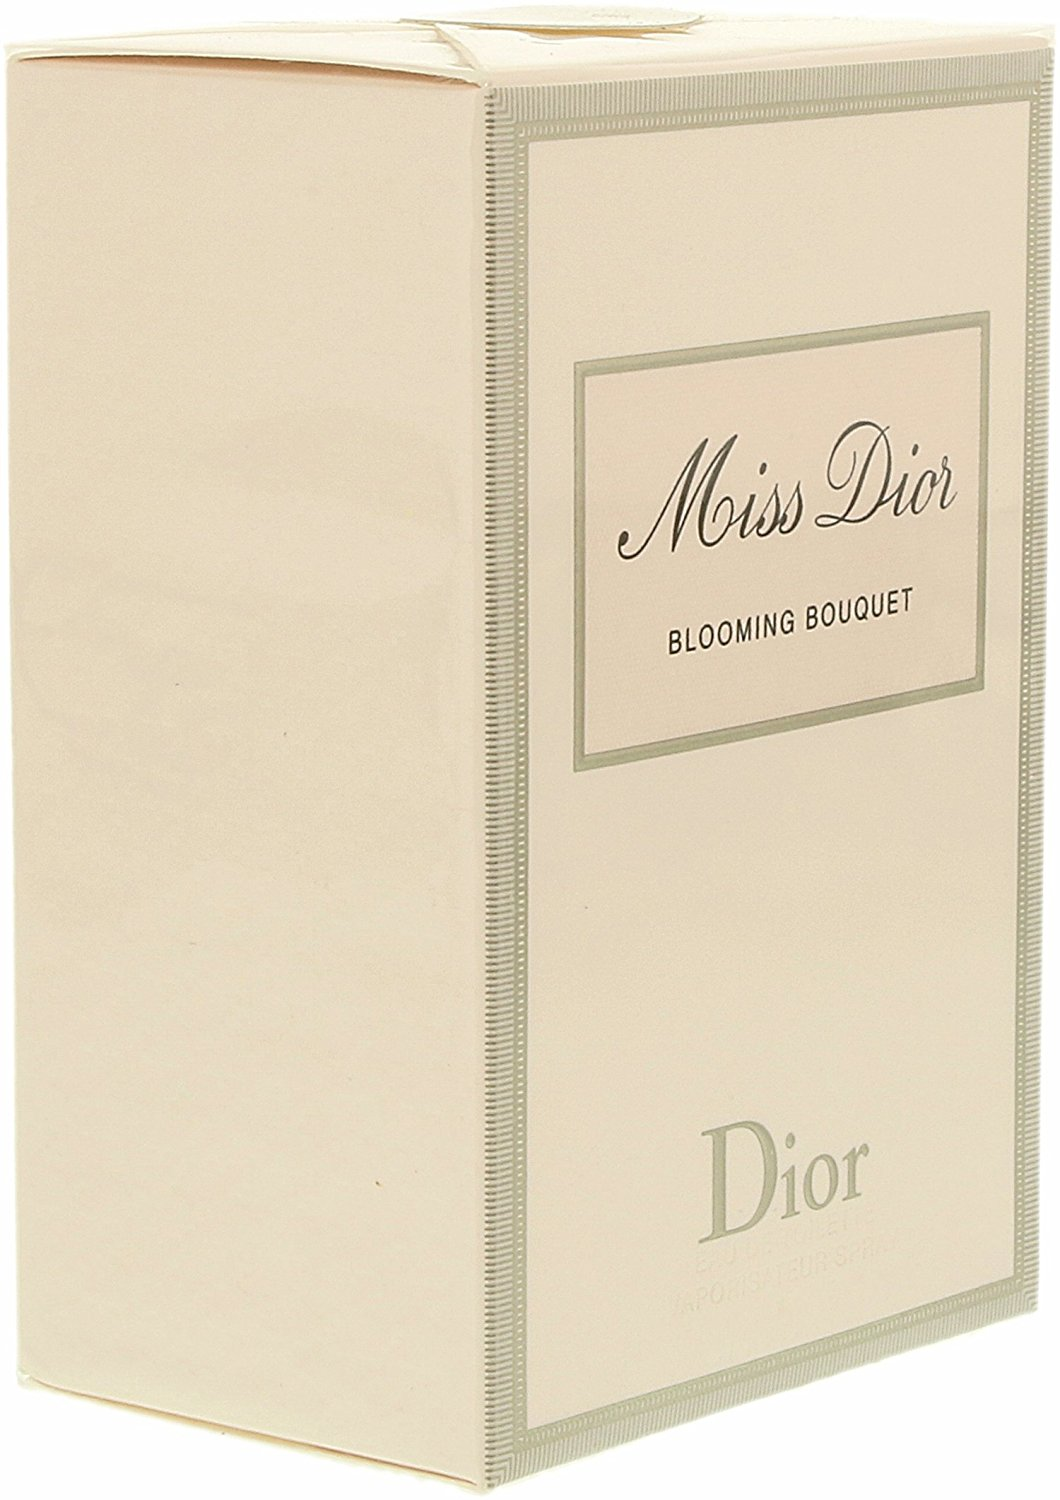 Christian Dior Miss Dior Blooming Bouquet Eau De Toilette Spray (New Scent) - 50ml/1.67oz